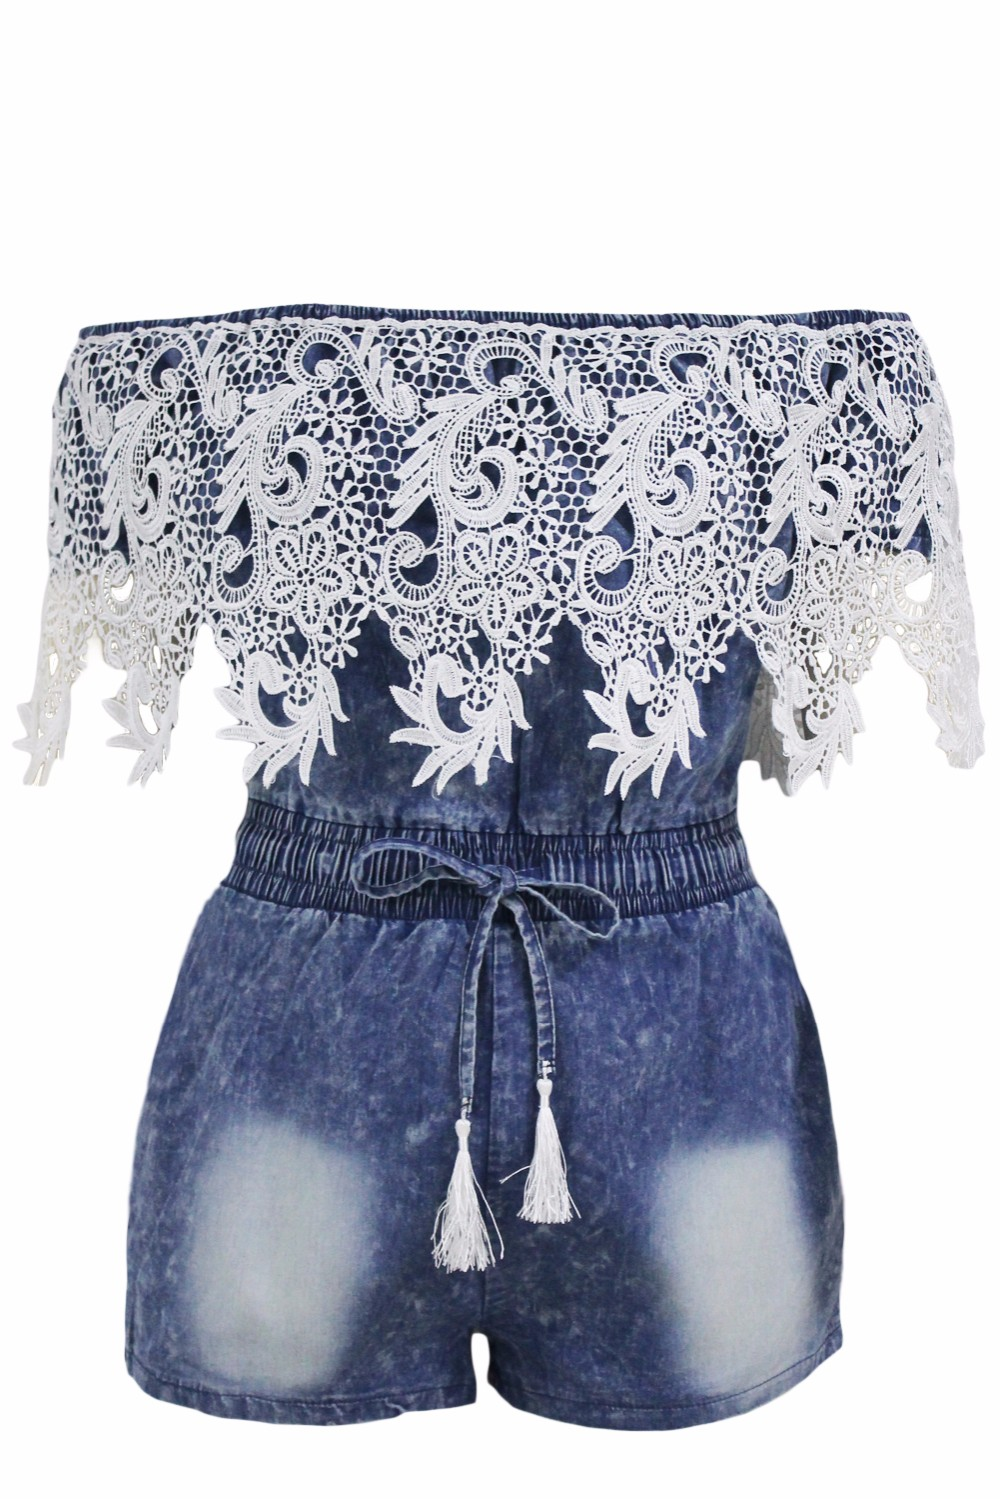 Crochet-Lace-Trim-Off-Shoulder-Denim-Romper-LC64137-5-3